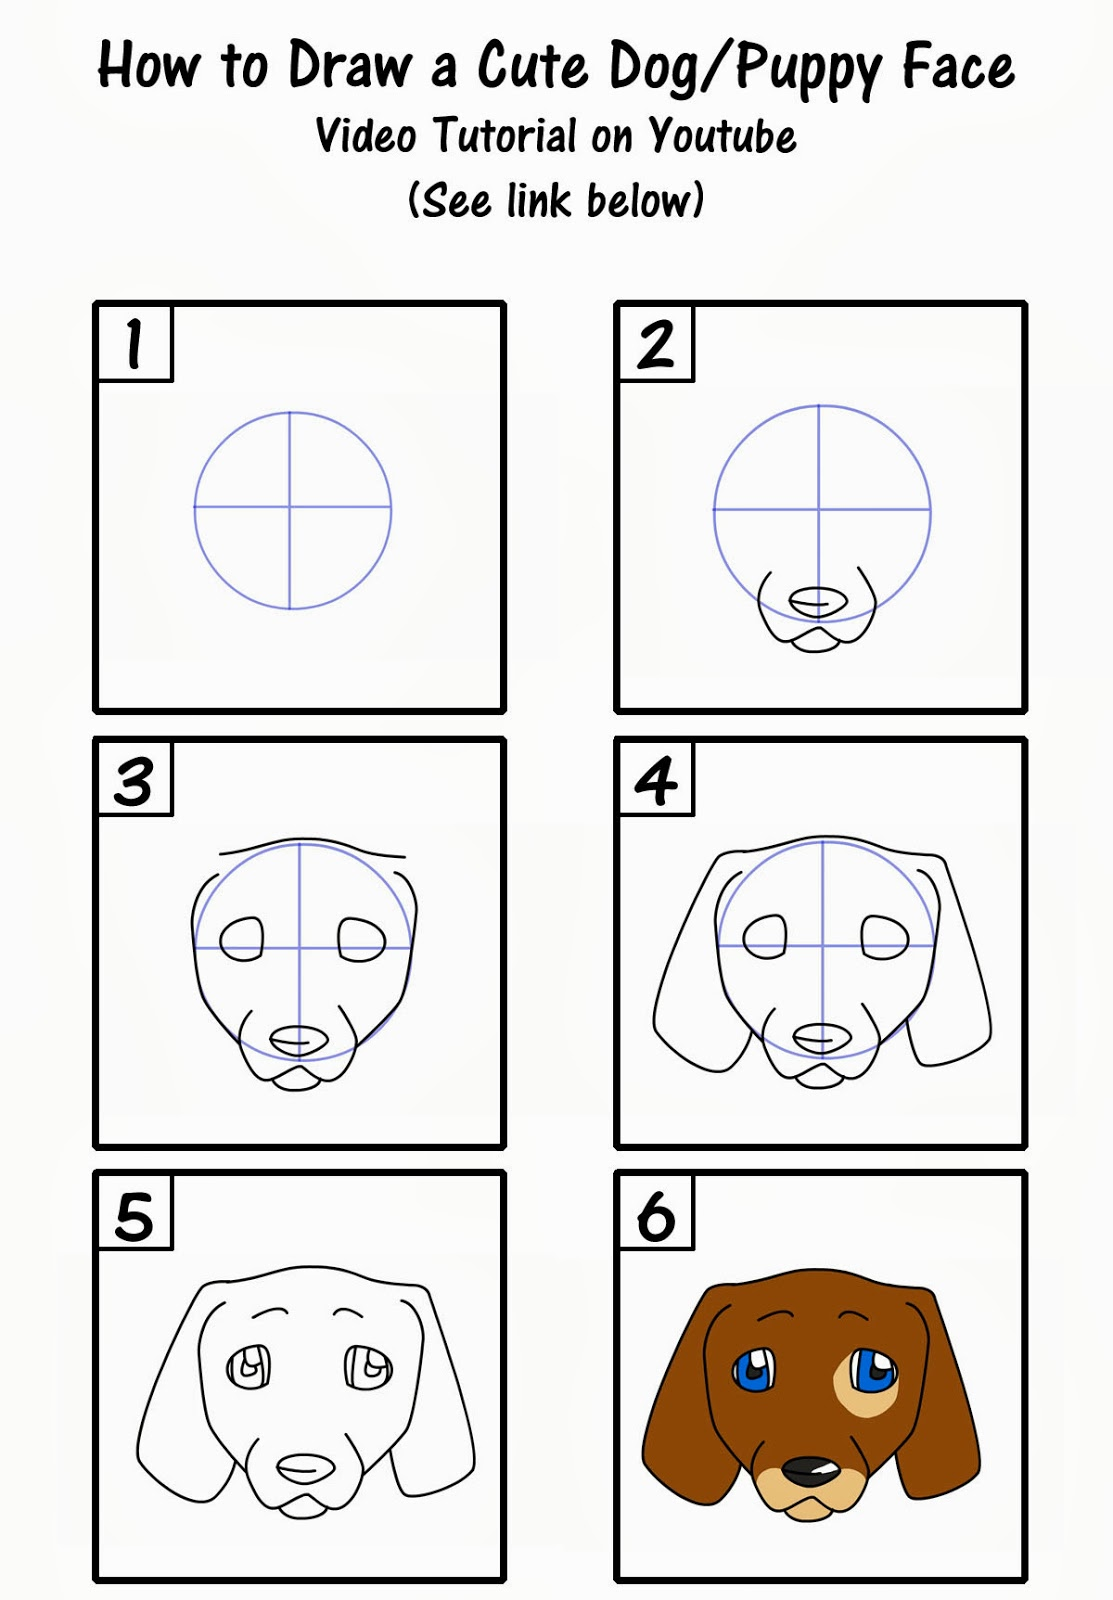 savanna williams how to draw dogs video tutorials panting and cute